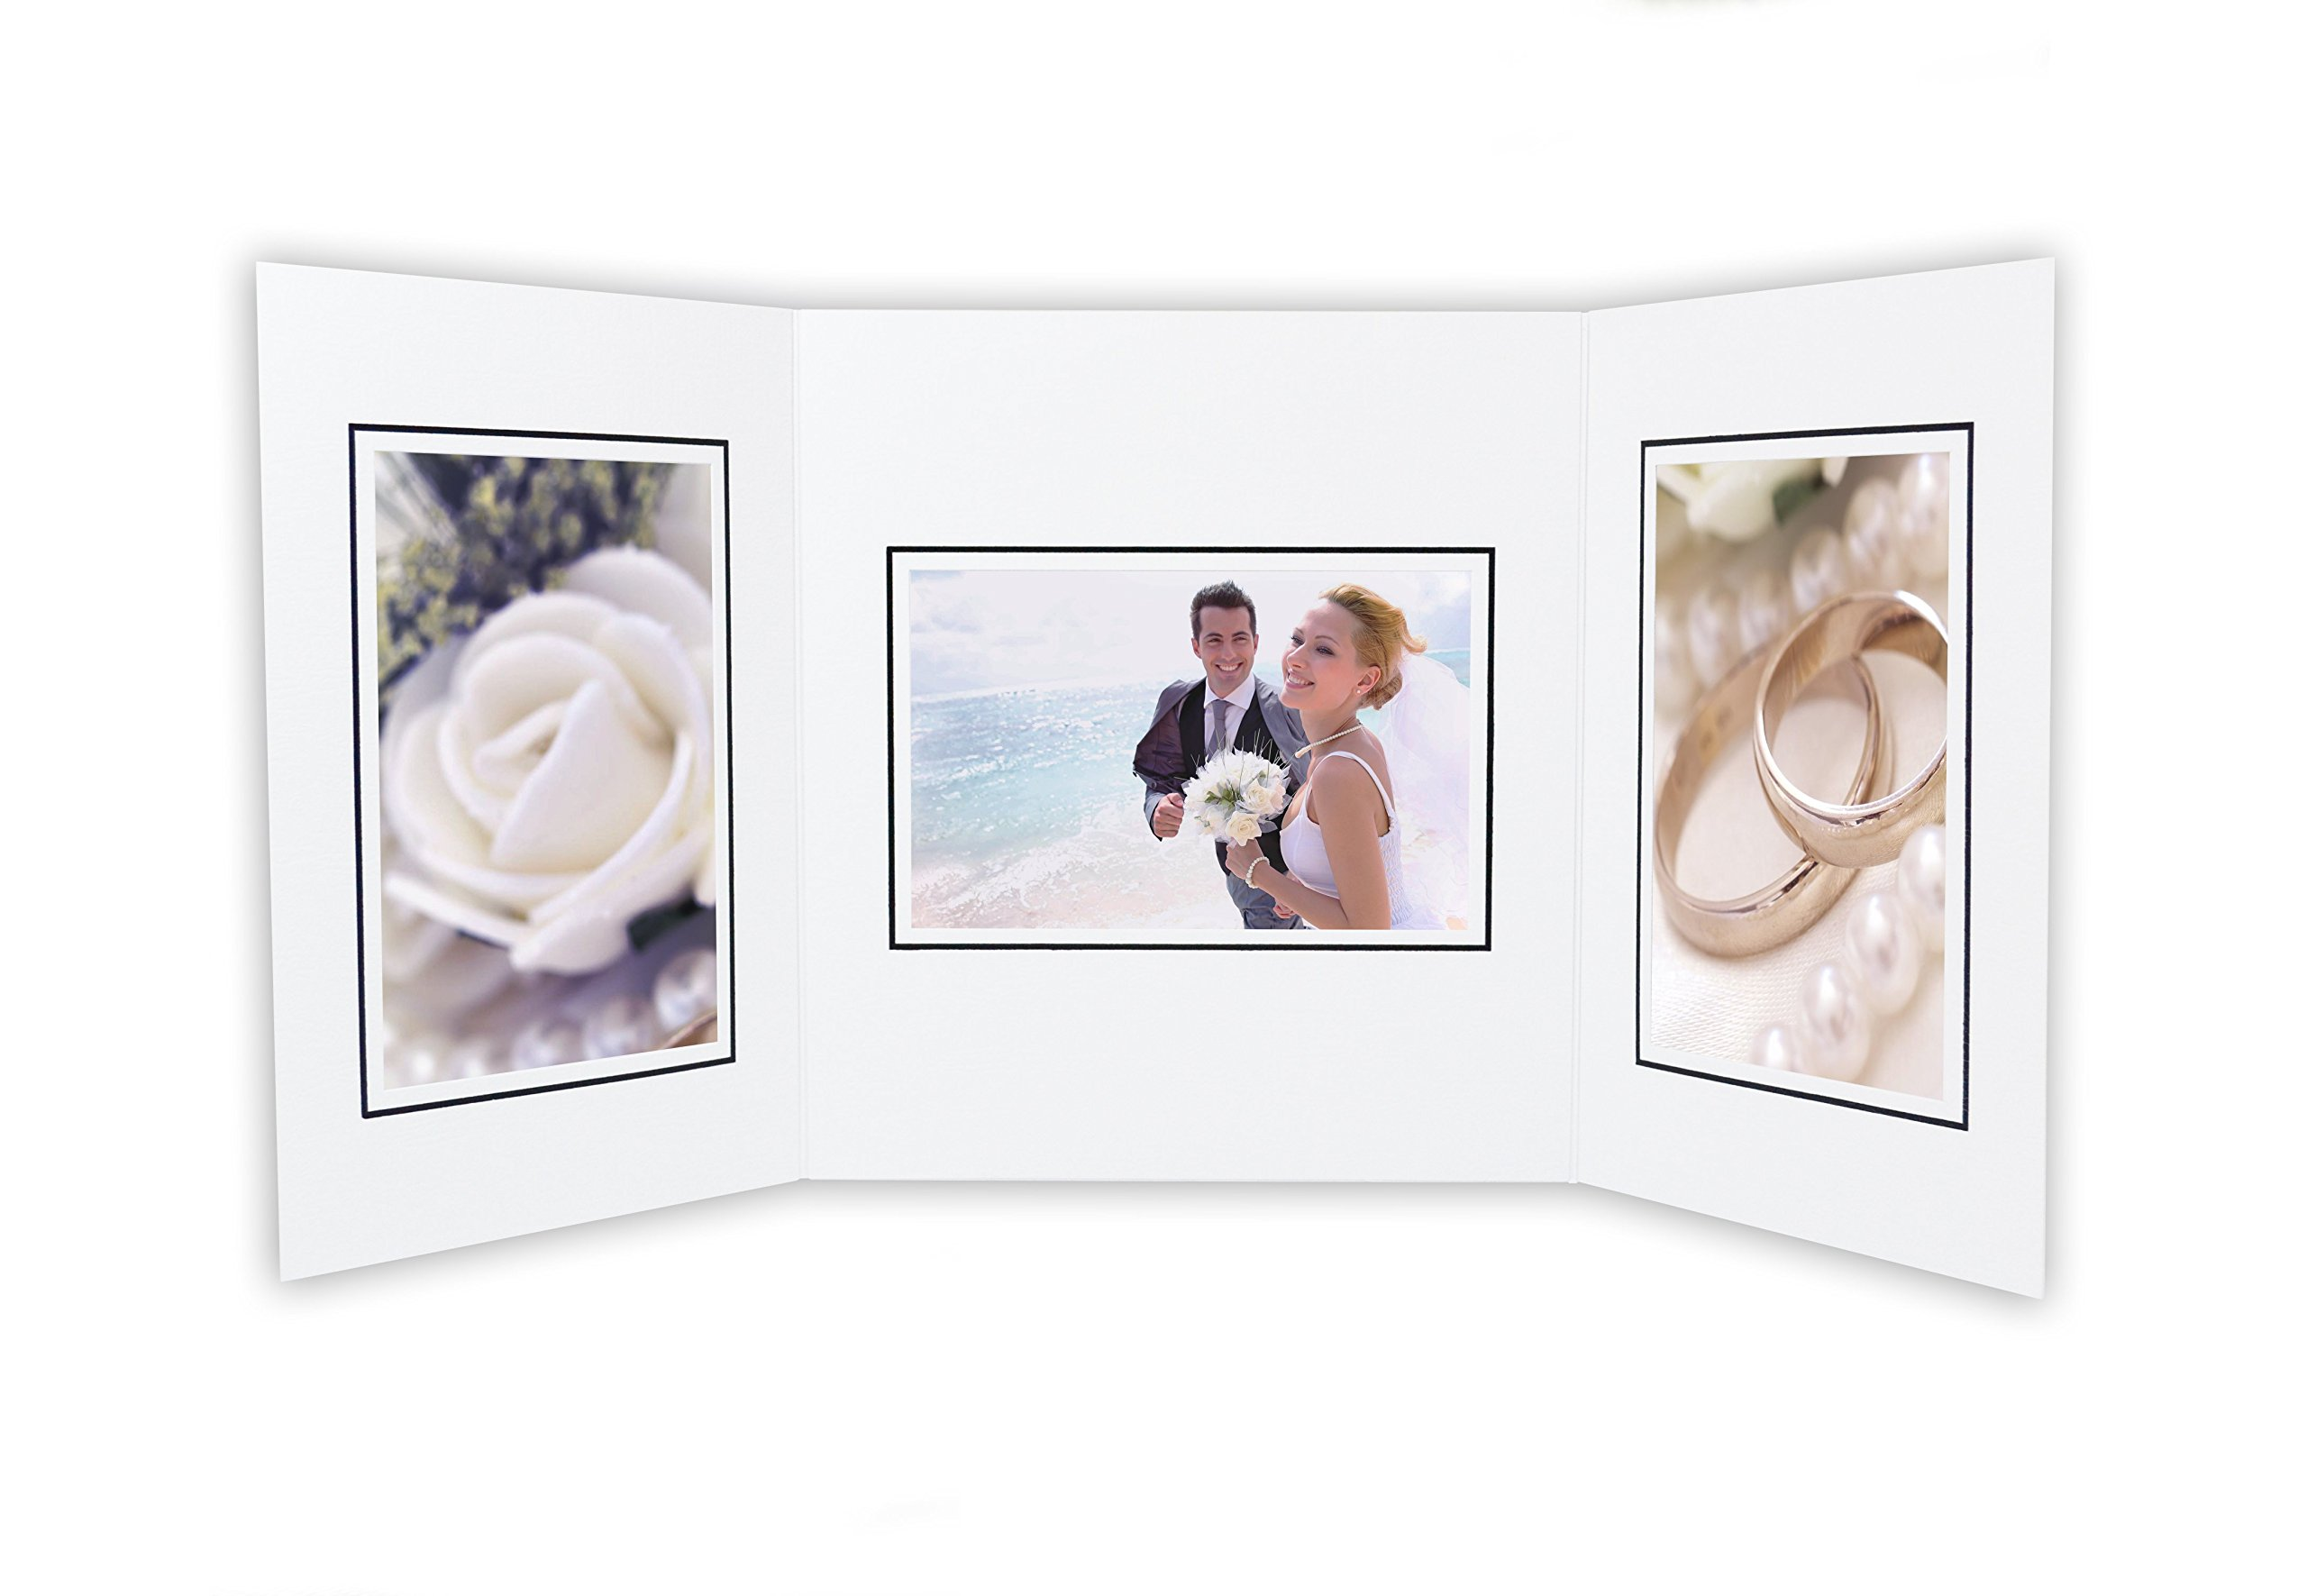 Golden State Art, Cardboard Photo Folder For 3 4x6 Photo (Pack of 50) GS002 White Color